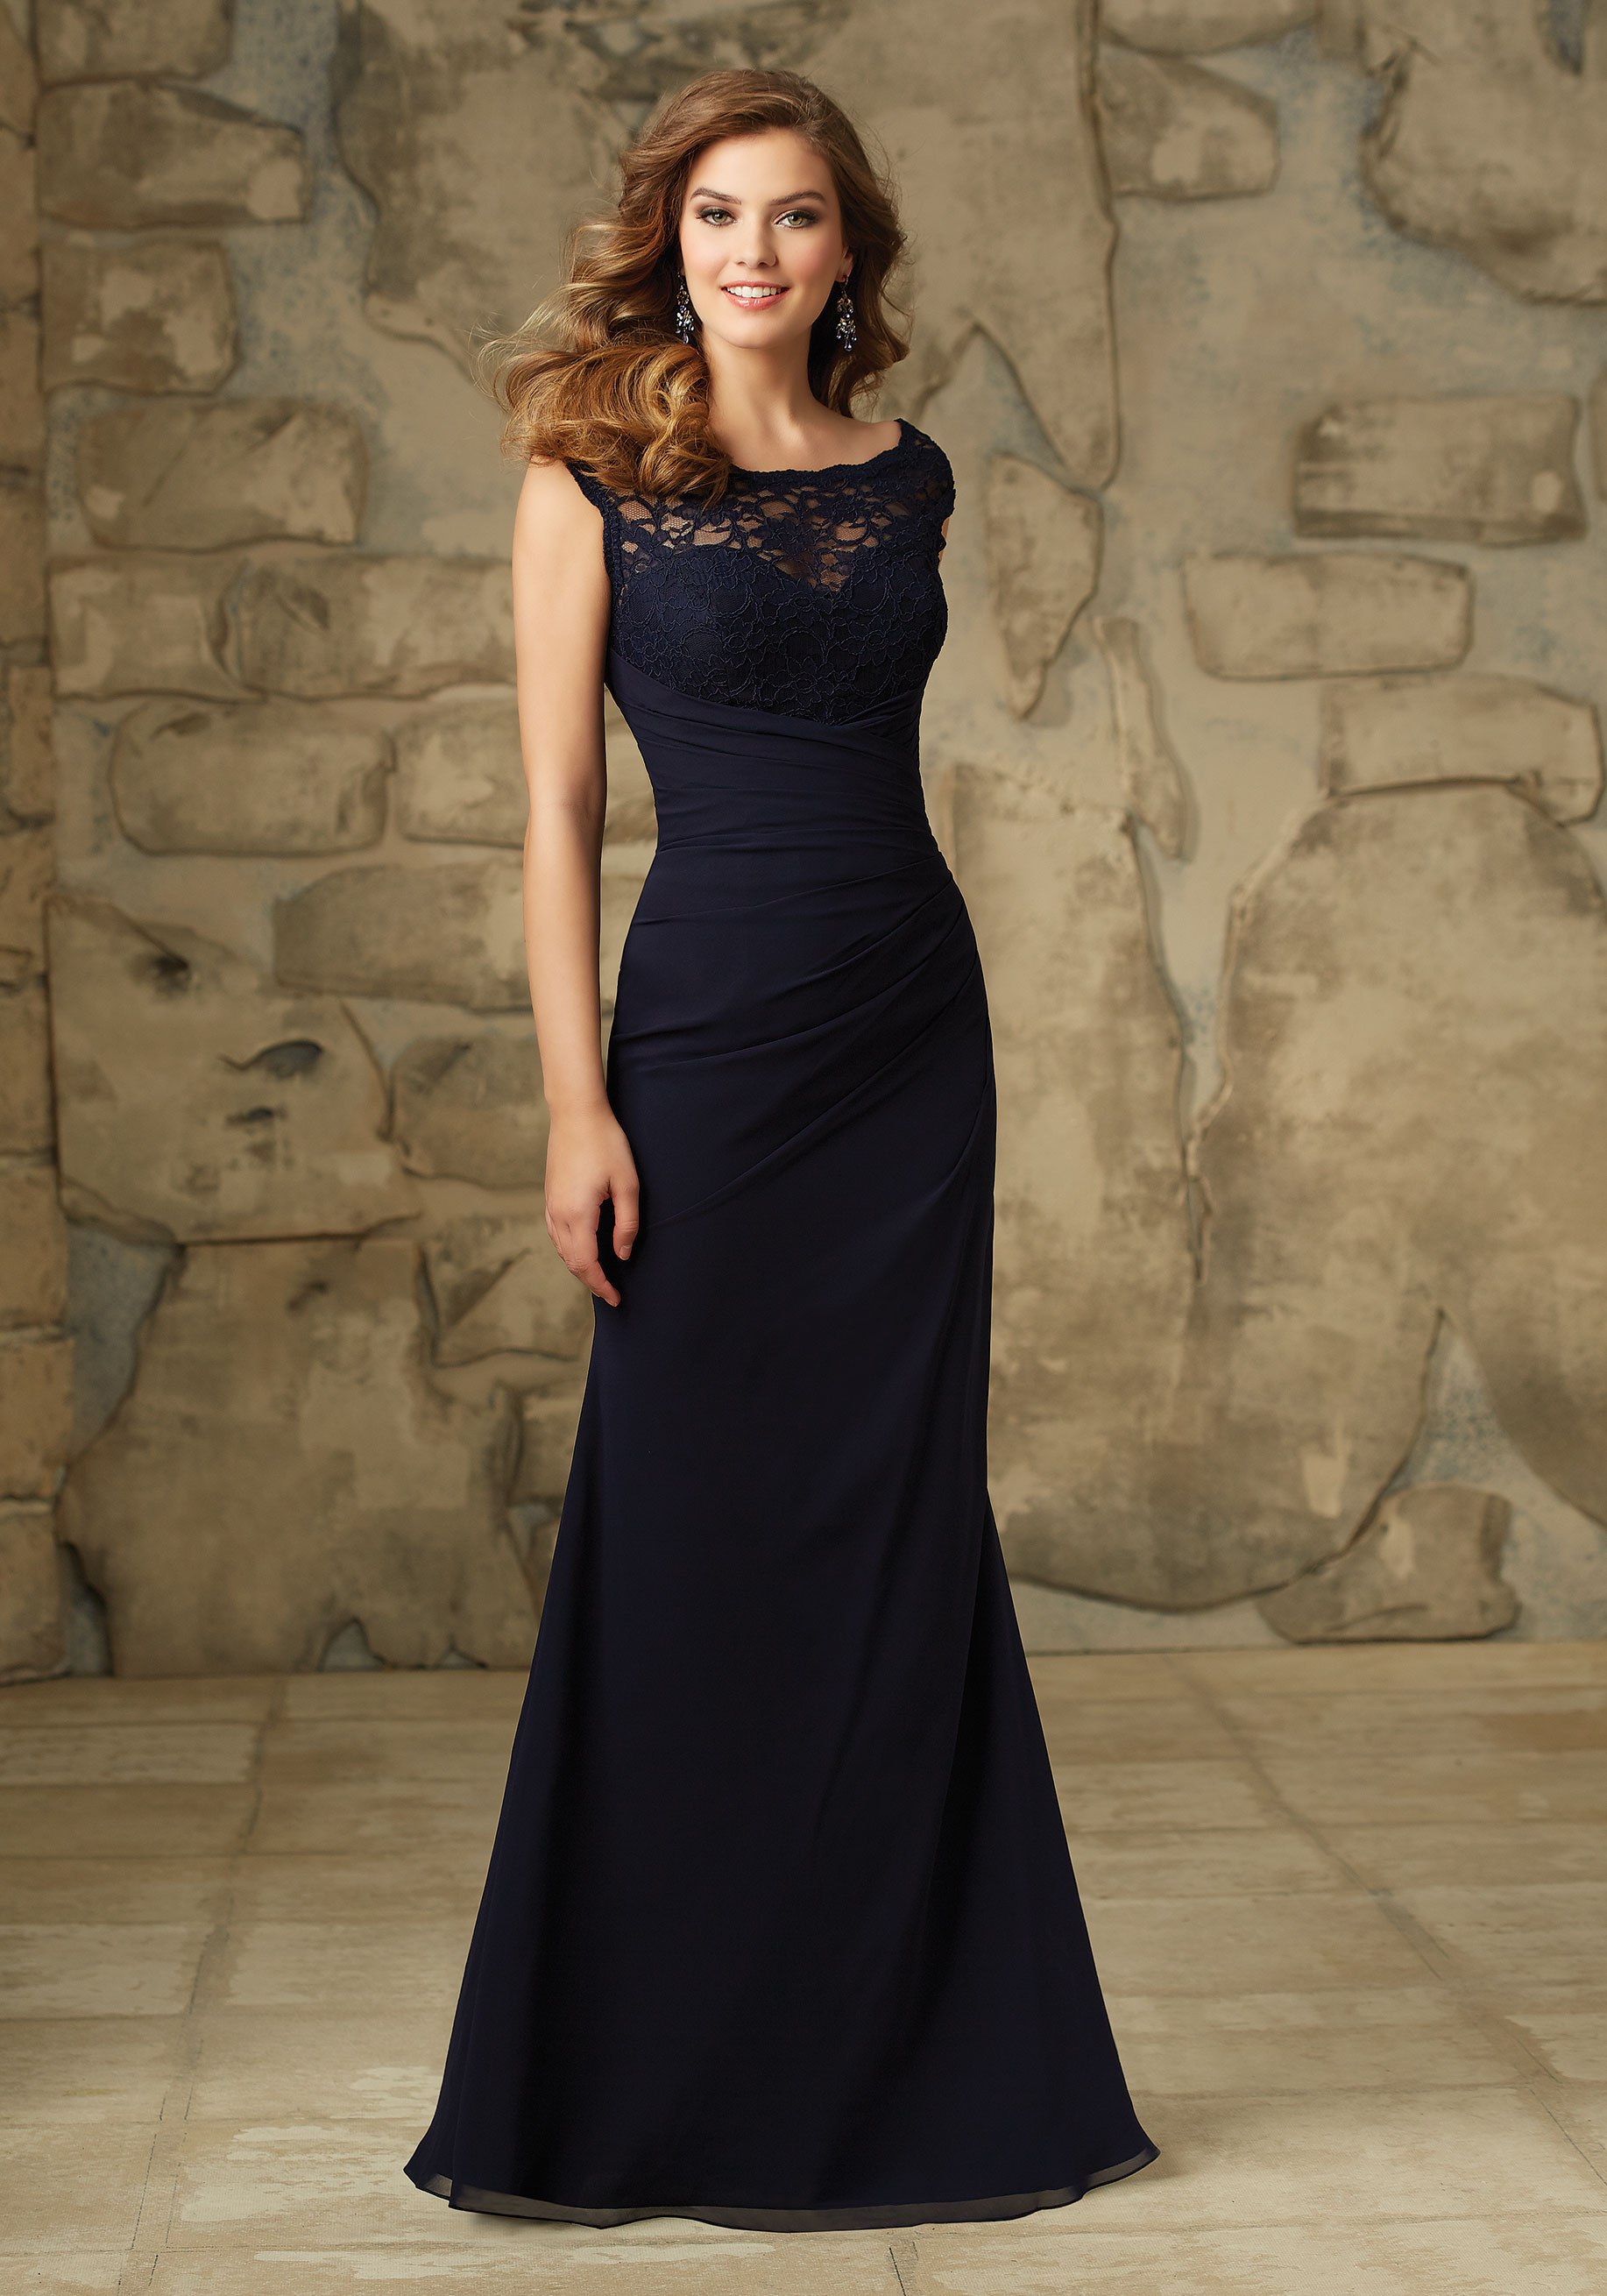 105. PRICE €250. Beautiful Lace and Chiffon Bridesmaid Dress with Illusion  Neckline Designed ... f9ca91a7f5b1